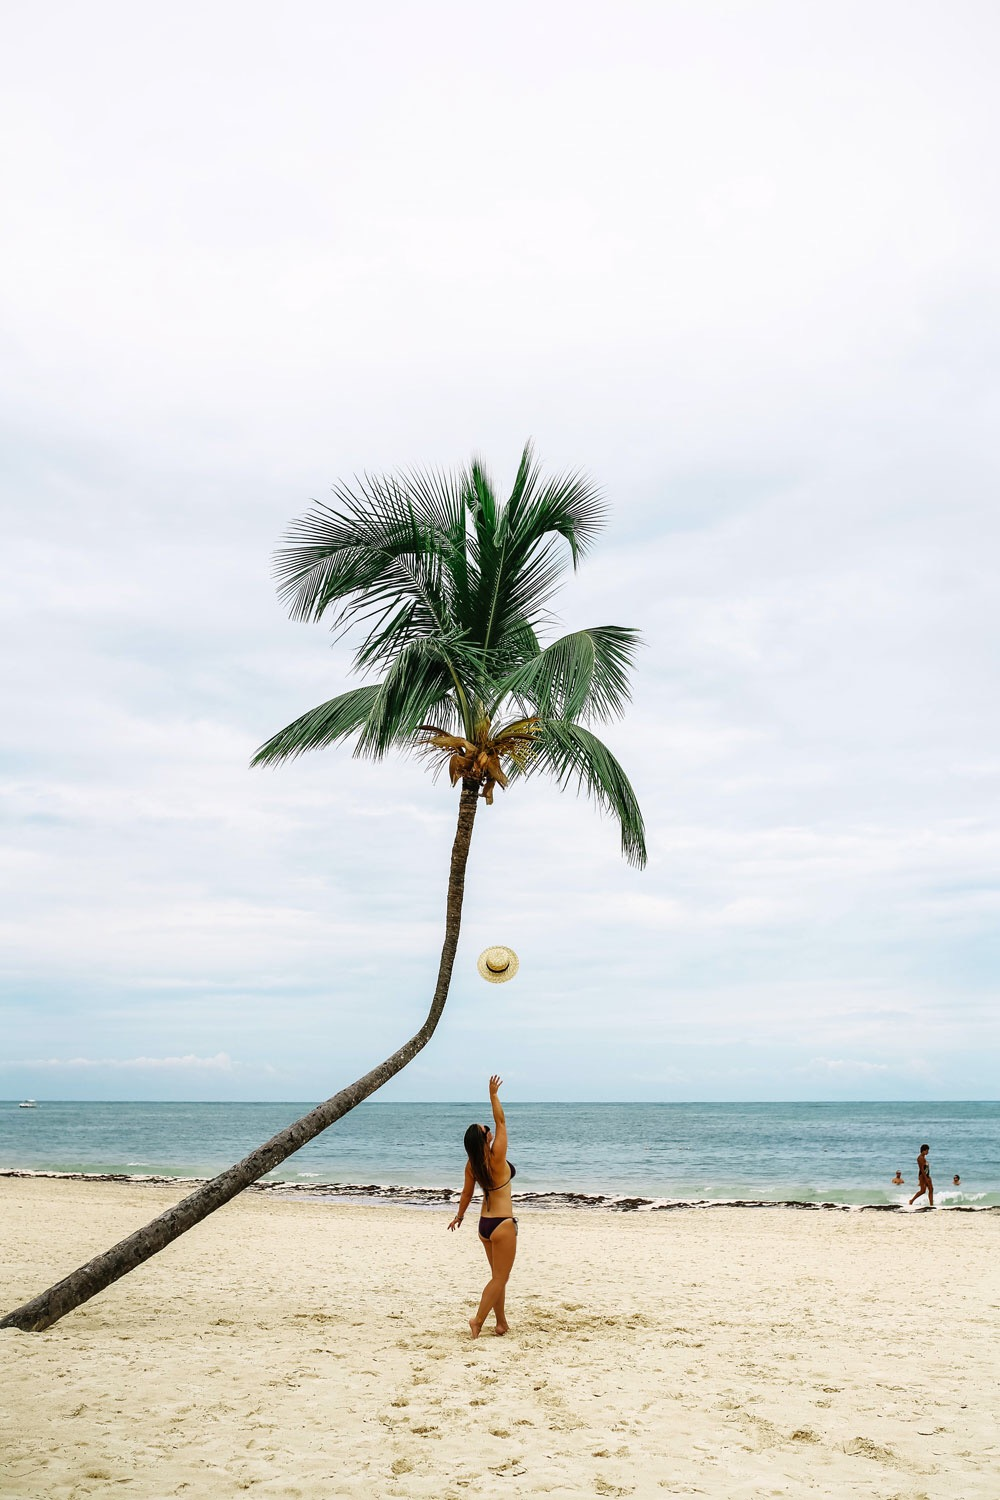 Best places to visit dominican republic by To Vogue or Bust